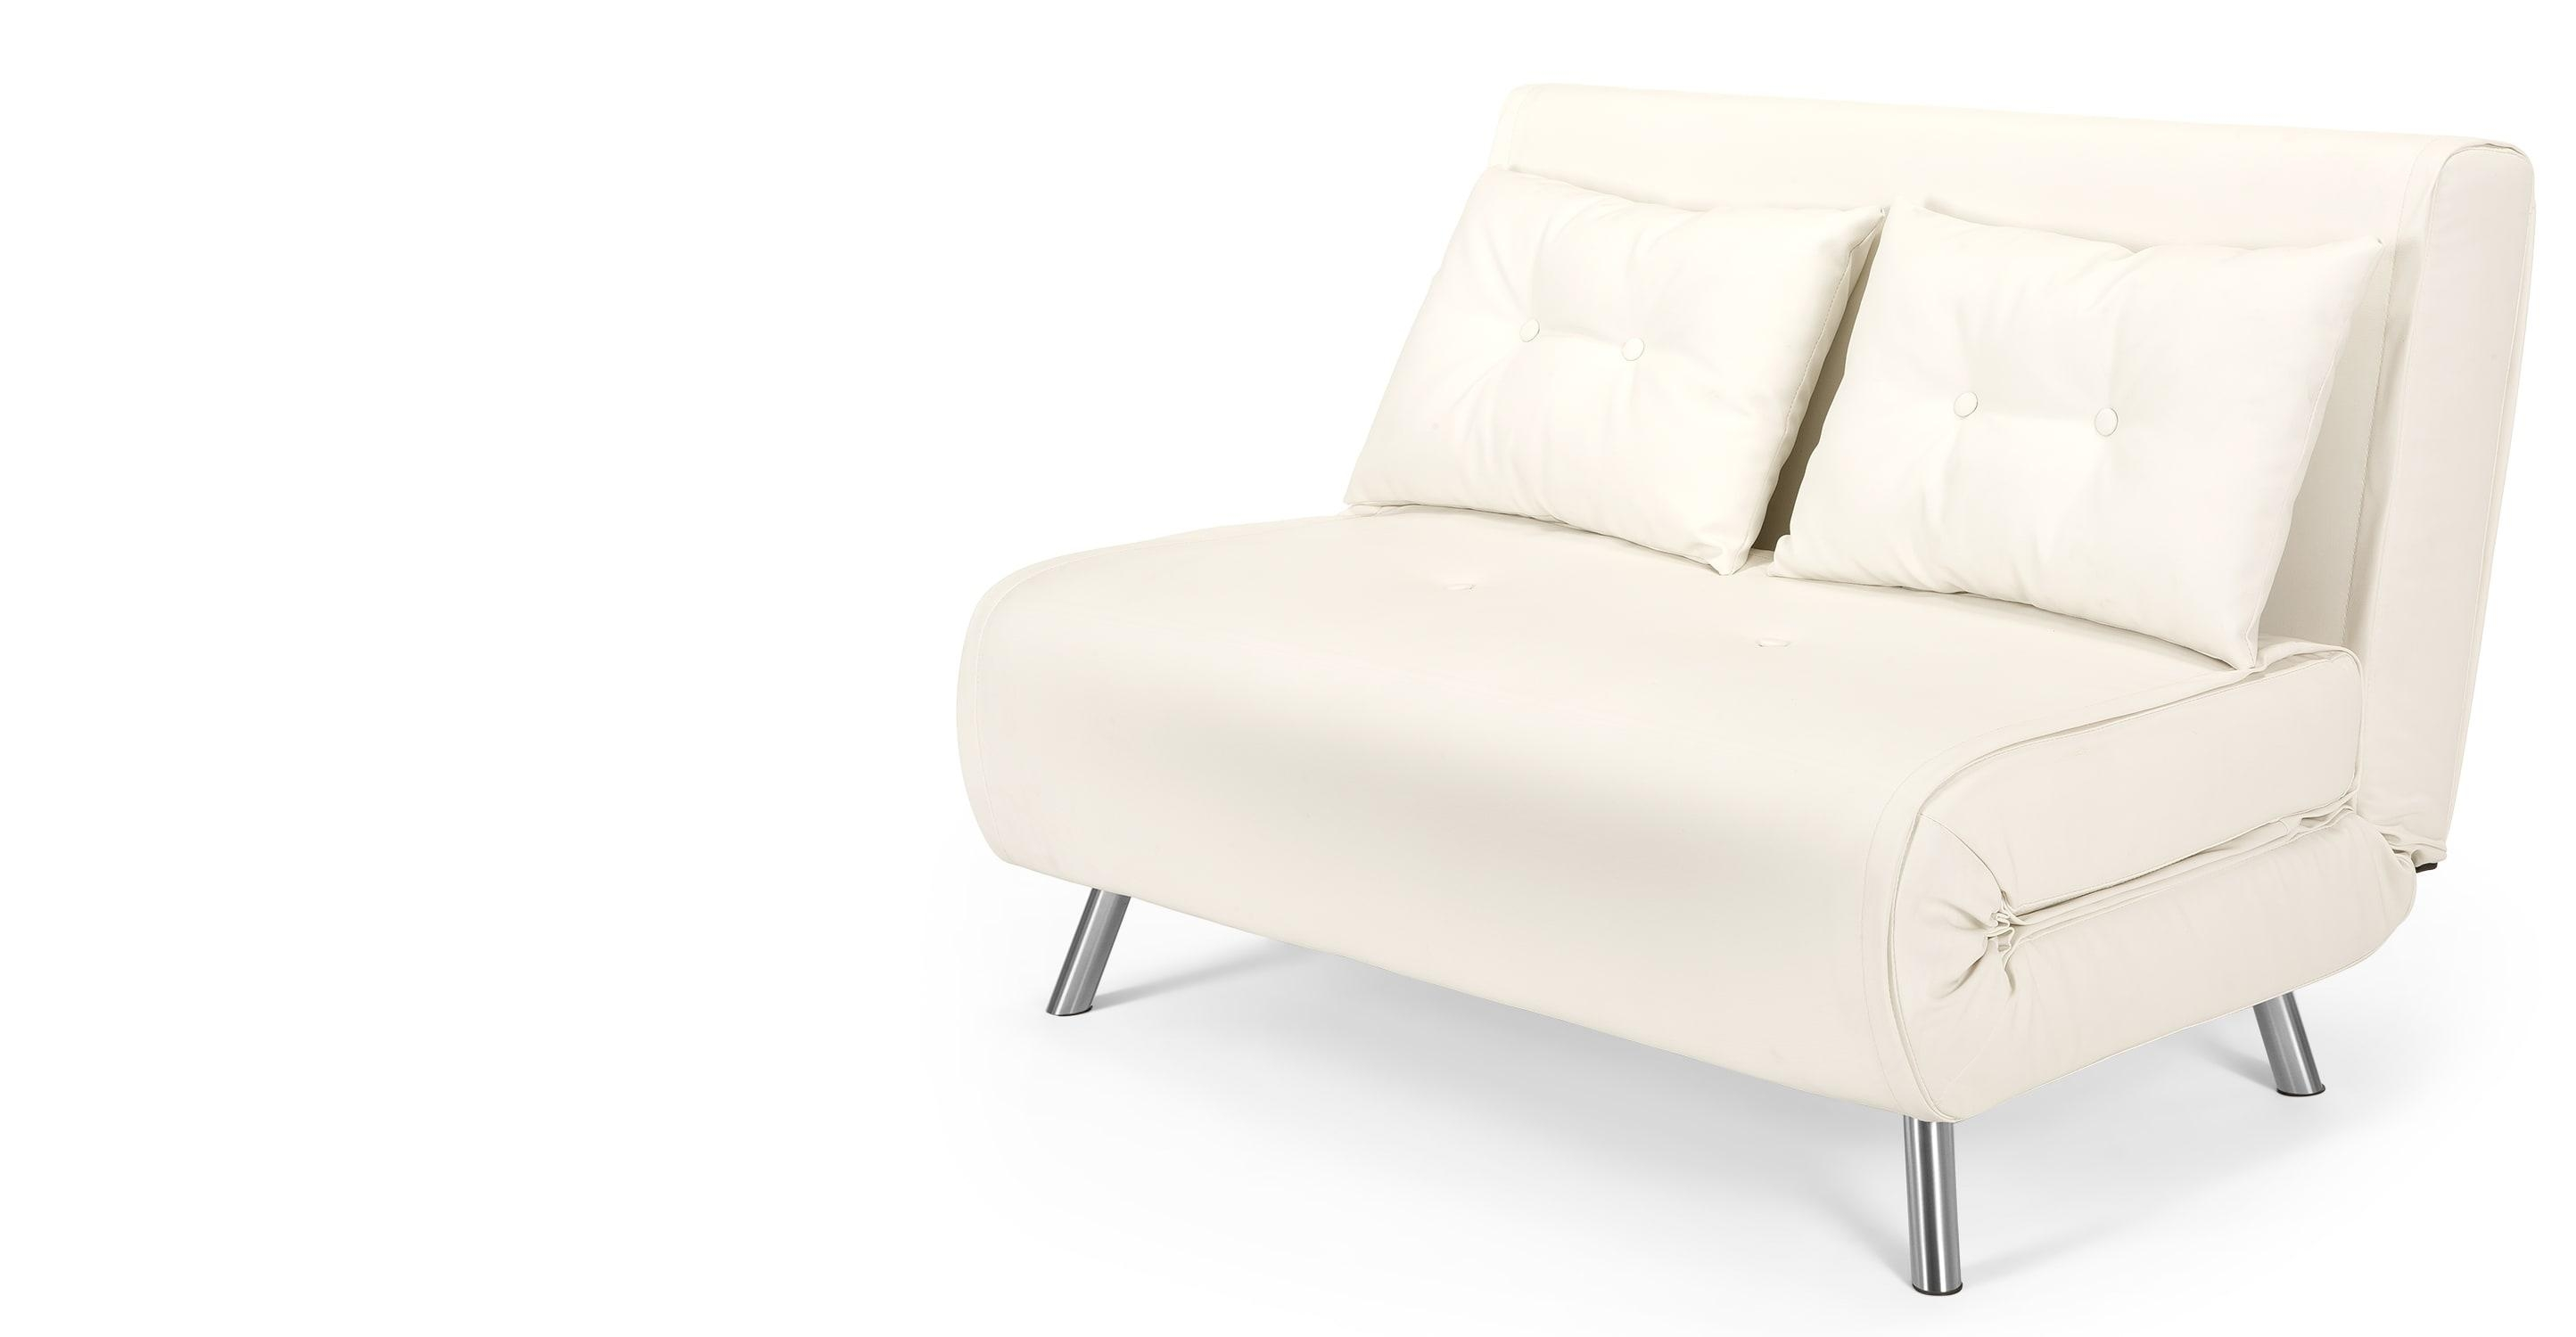 Metal Action Sofa Bed Uk – Leather Sectional Sofa With Regard To Very Small Sofas (Image 6 of 20)